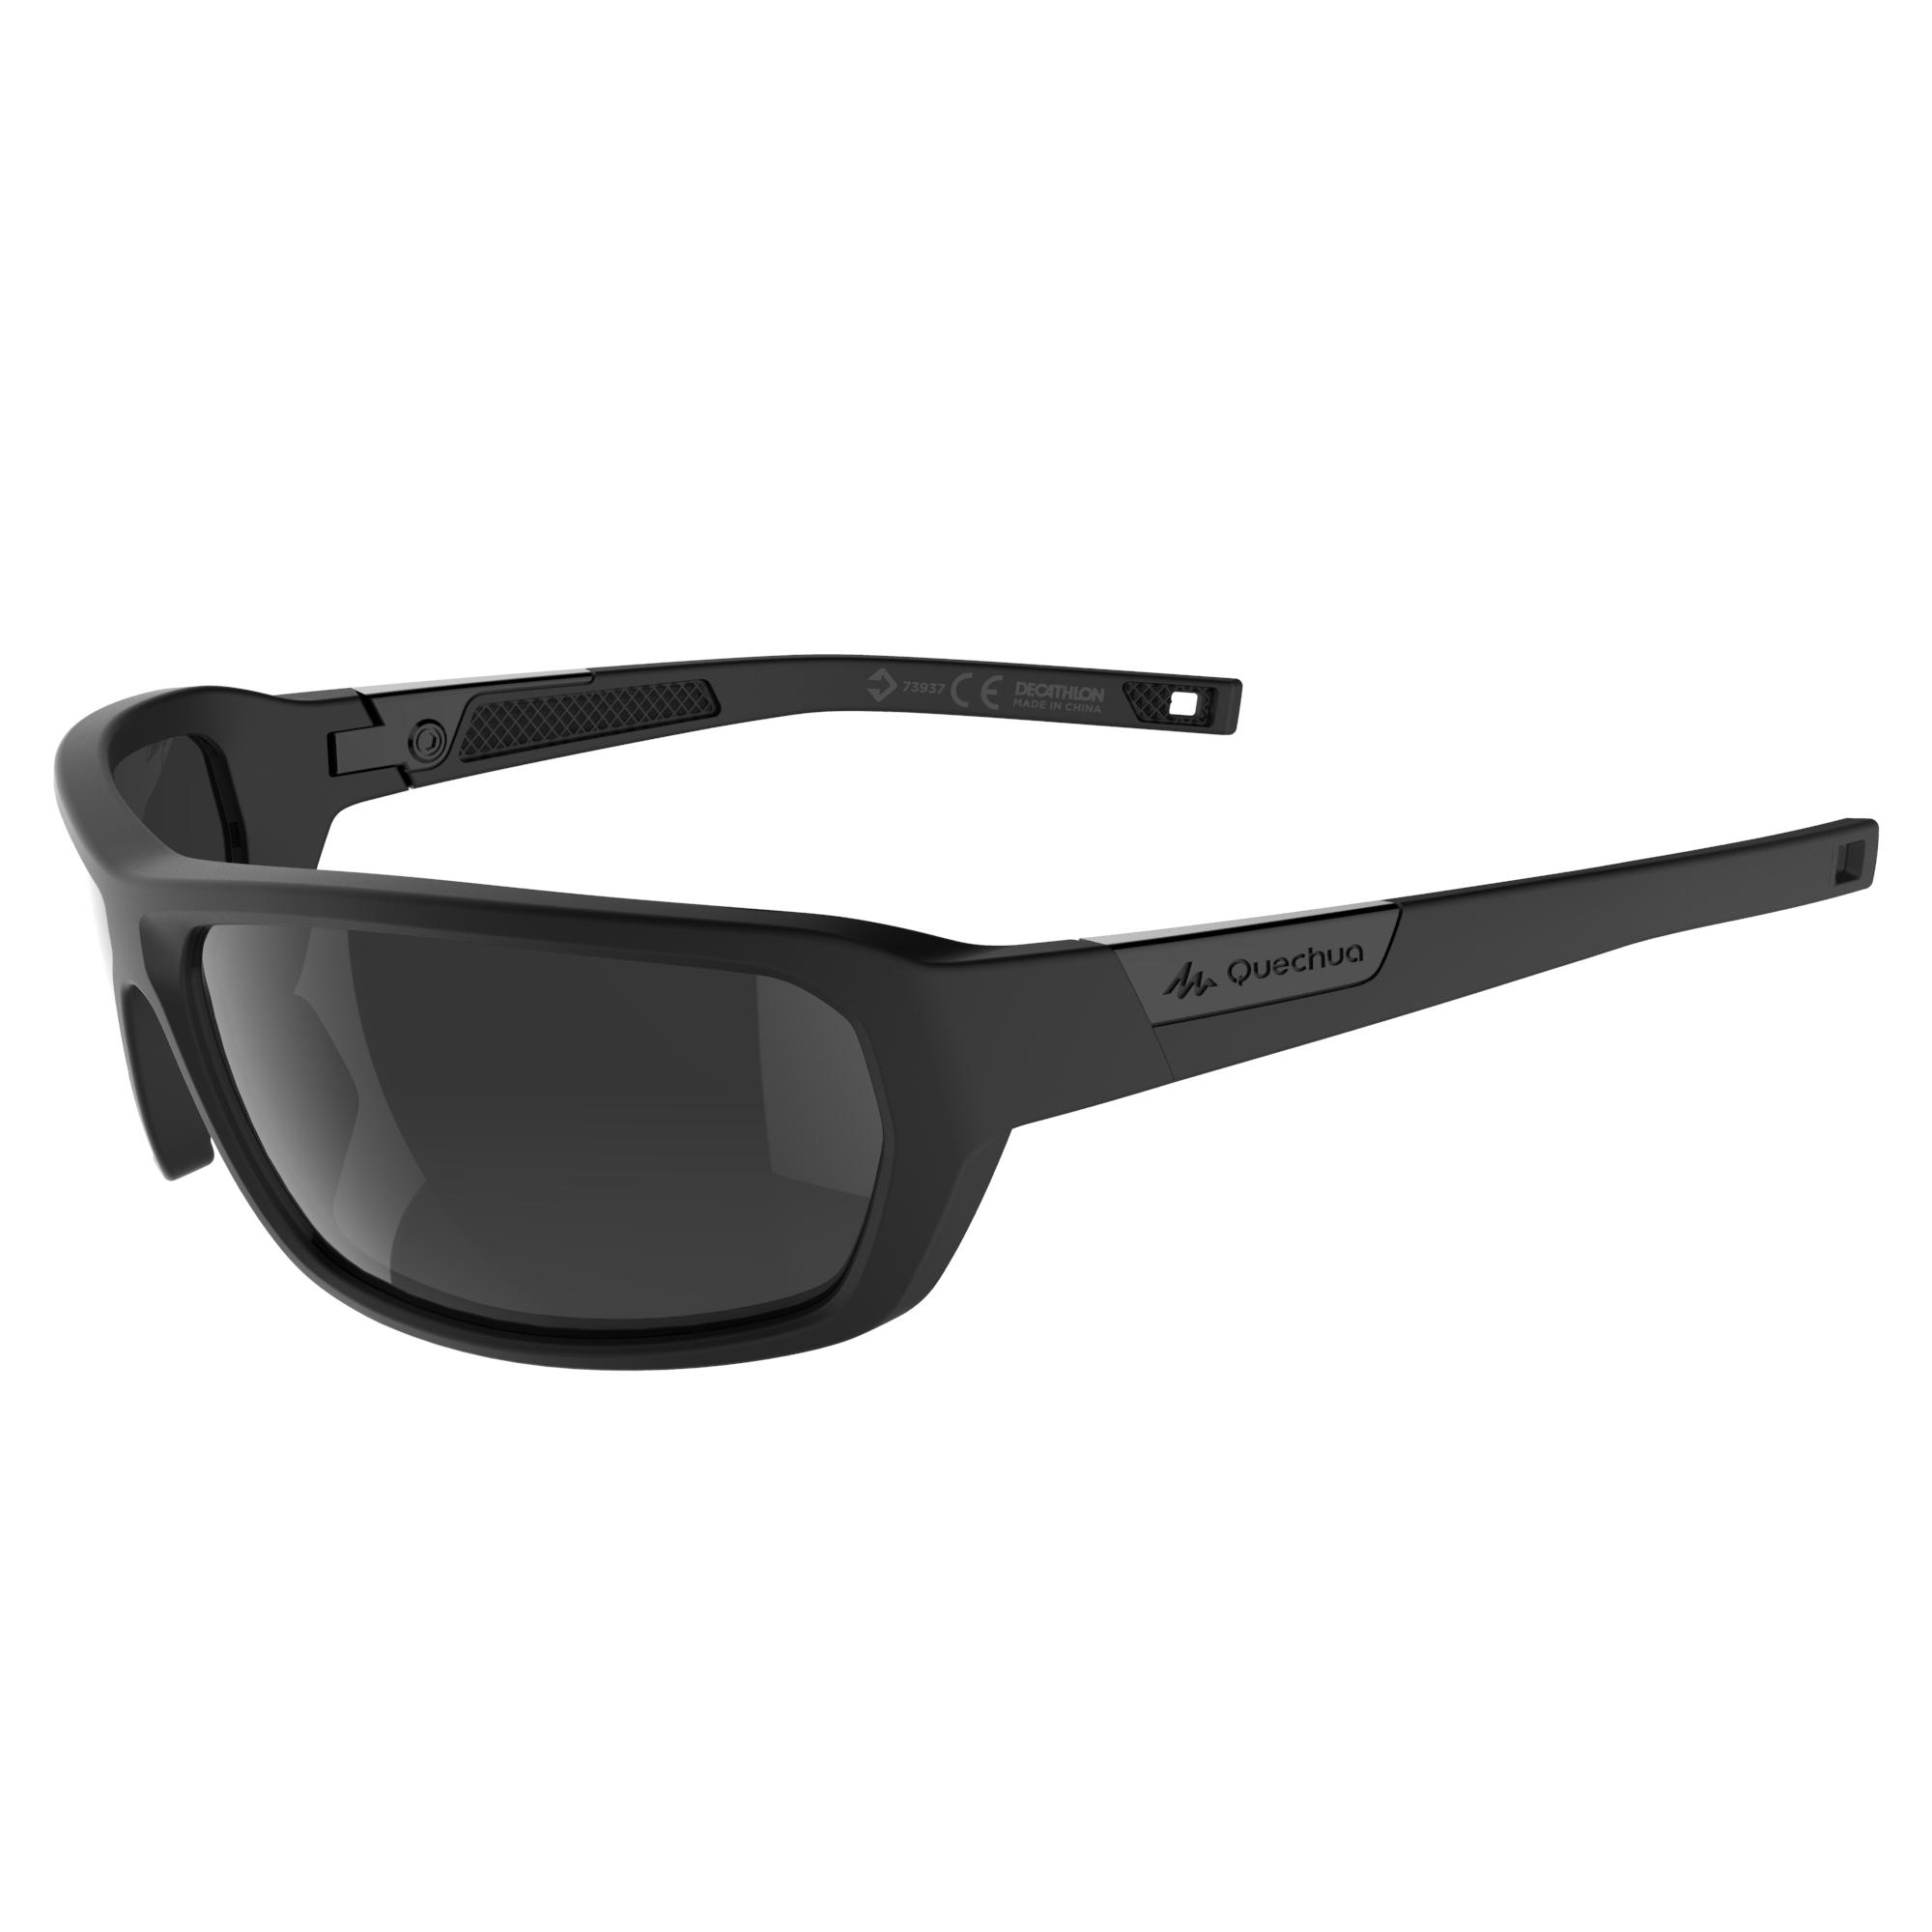 Sunglasses Hiking Category Black Mh510 3 vm0wN8n